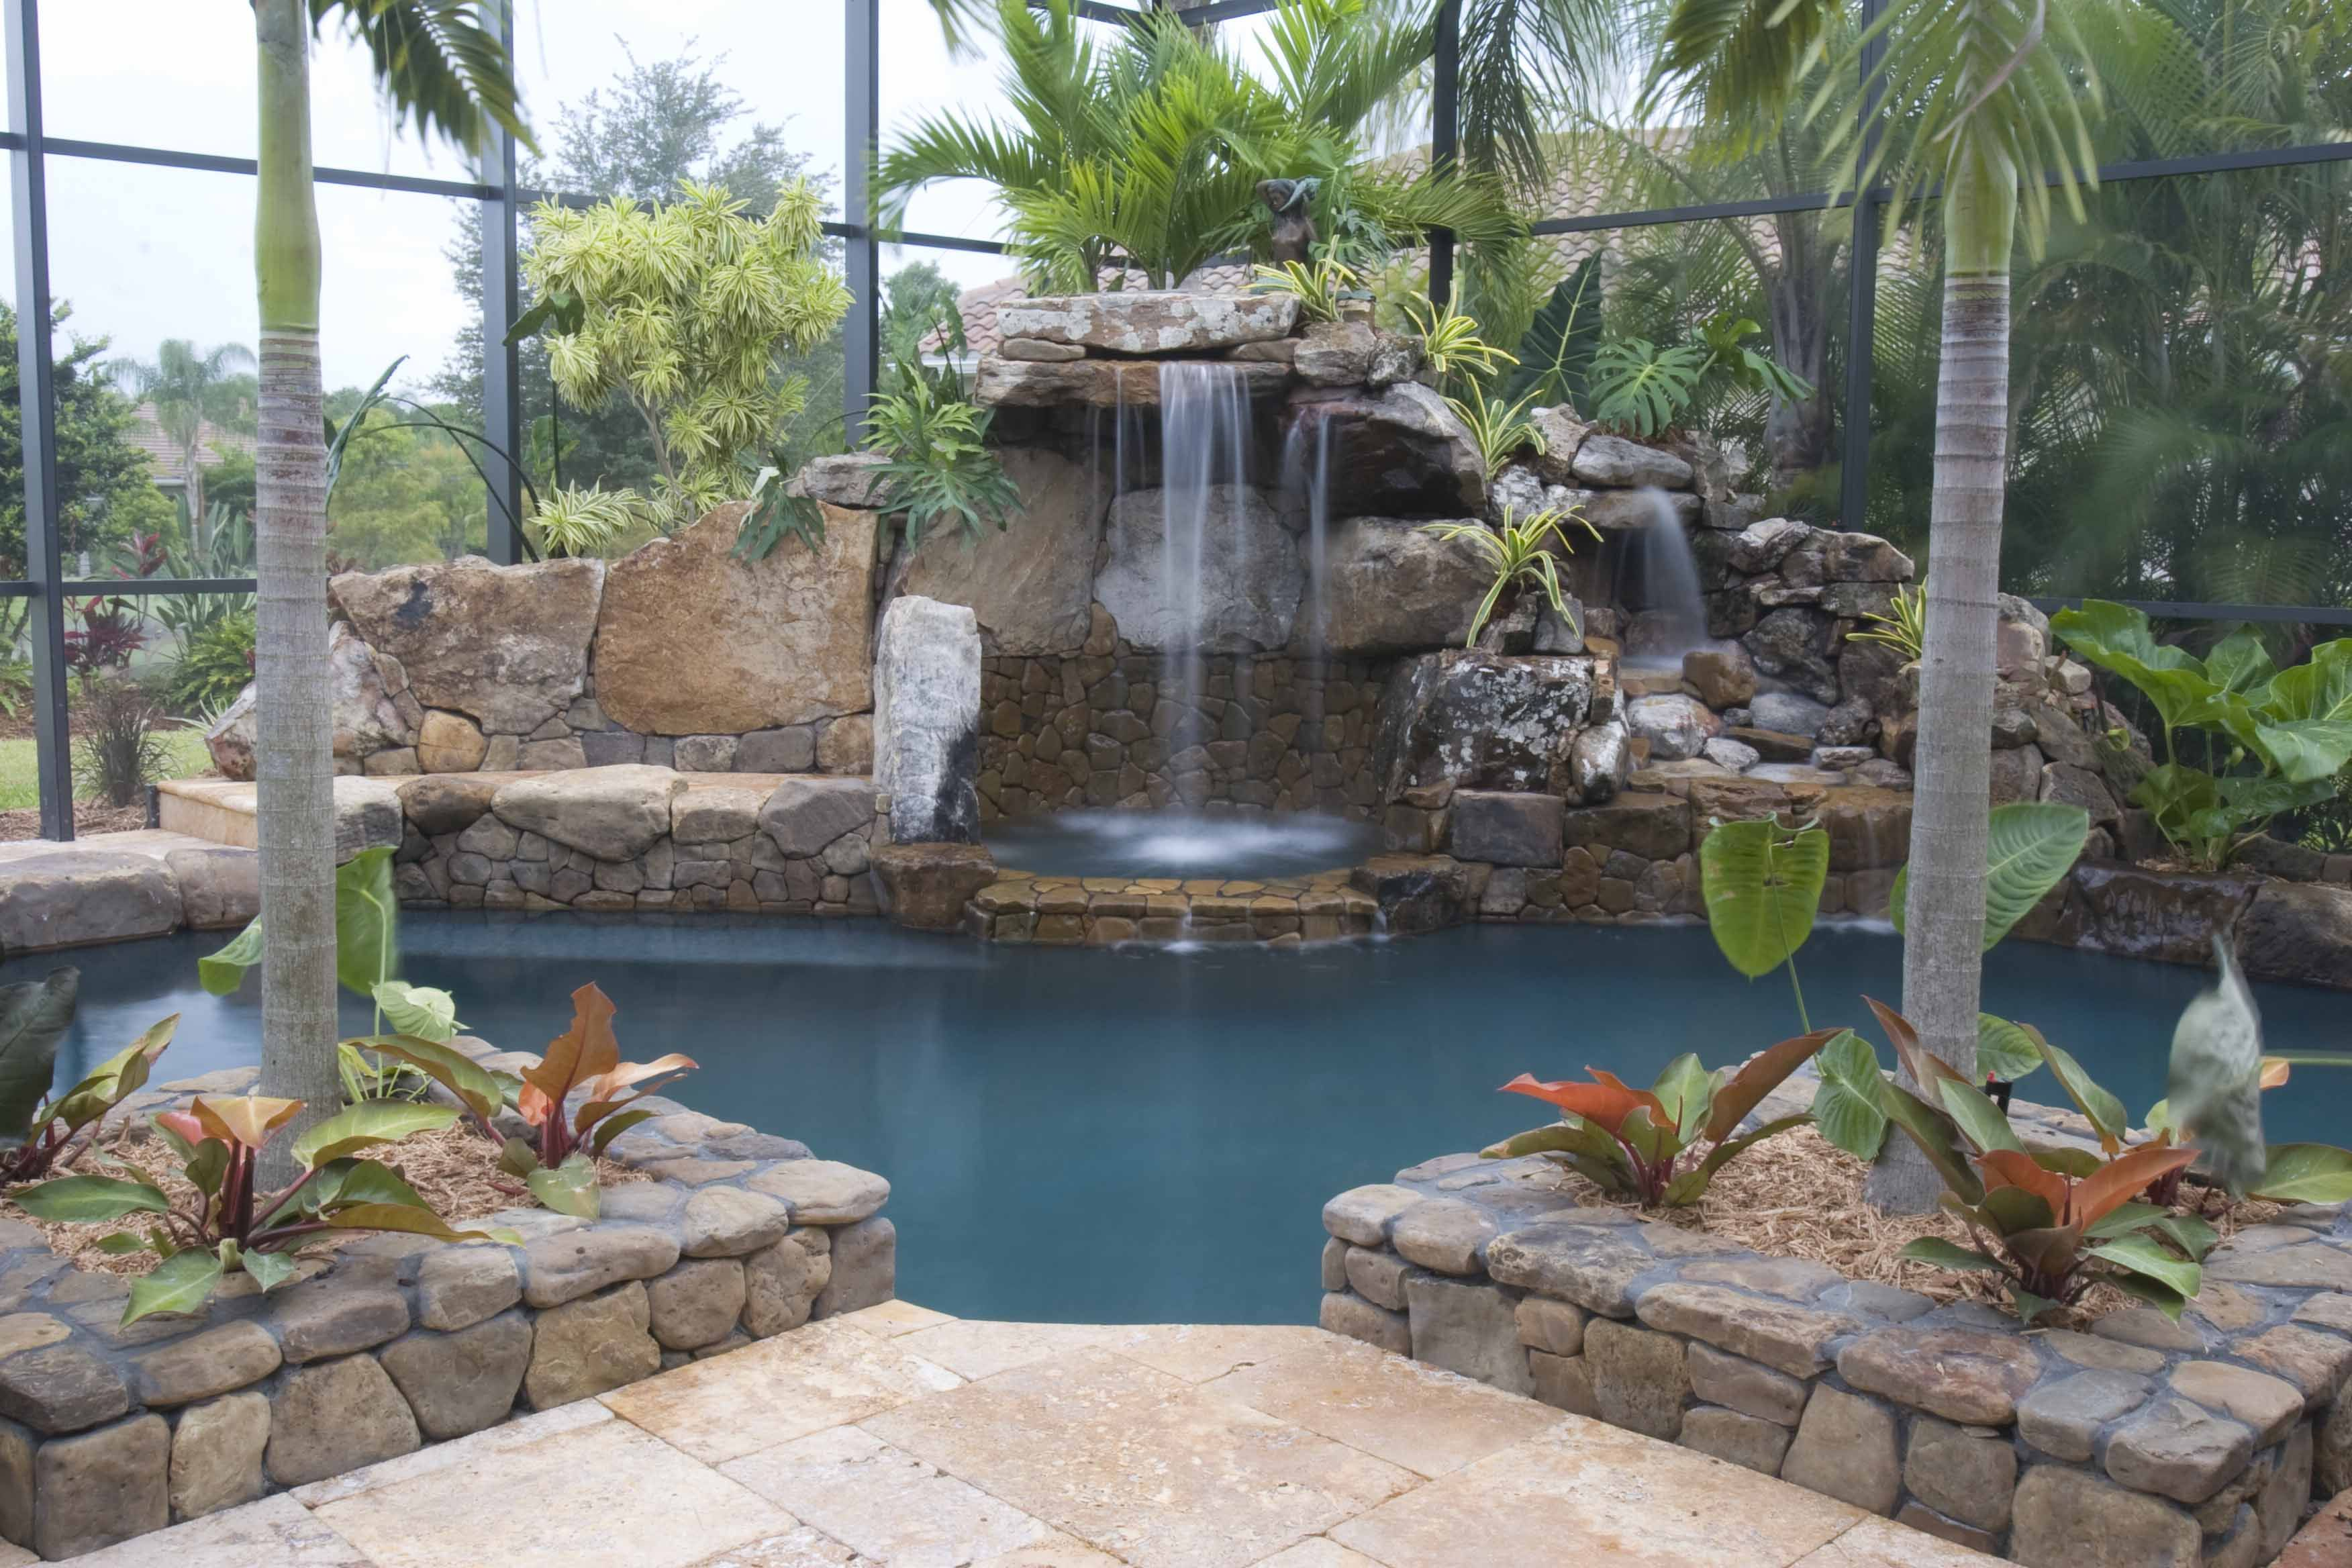 Swimming Pool Waterfall Designs best pool waterfalls ideas for your swimming pool Find This Pin And More On Pools Design Your Swimming Pool With Adding Waterfall